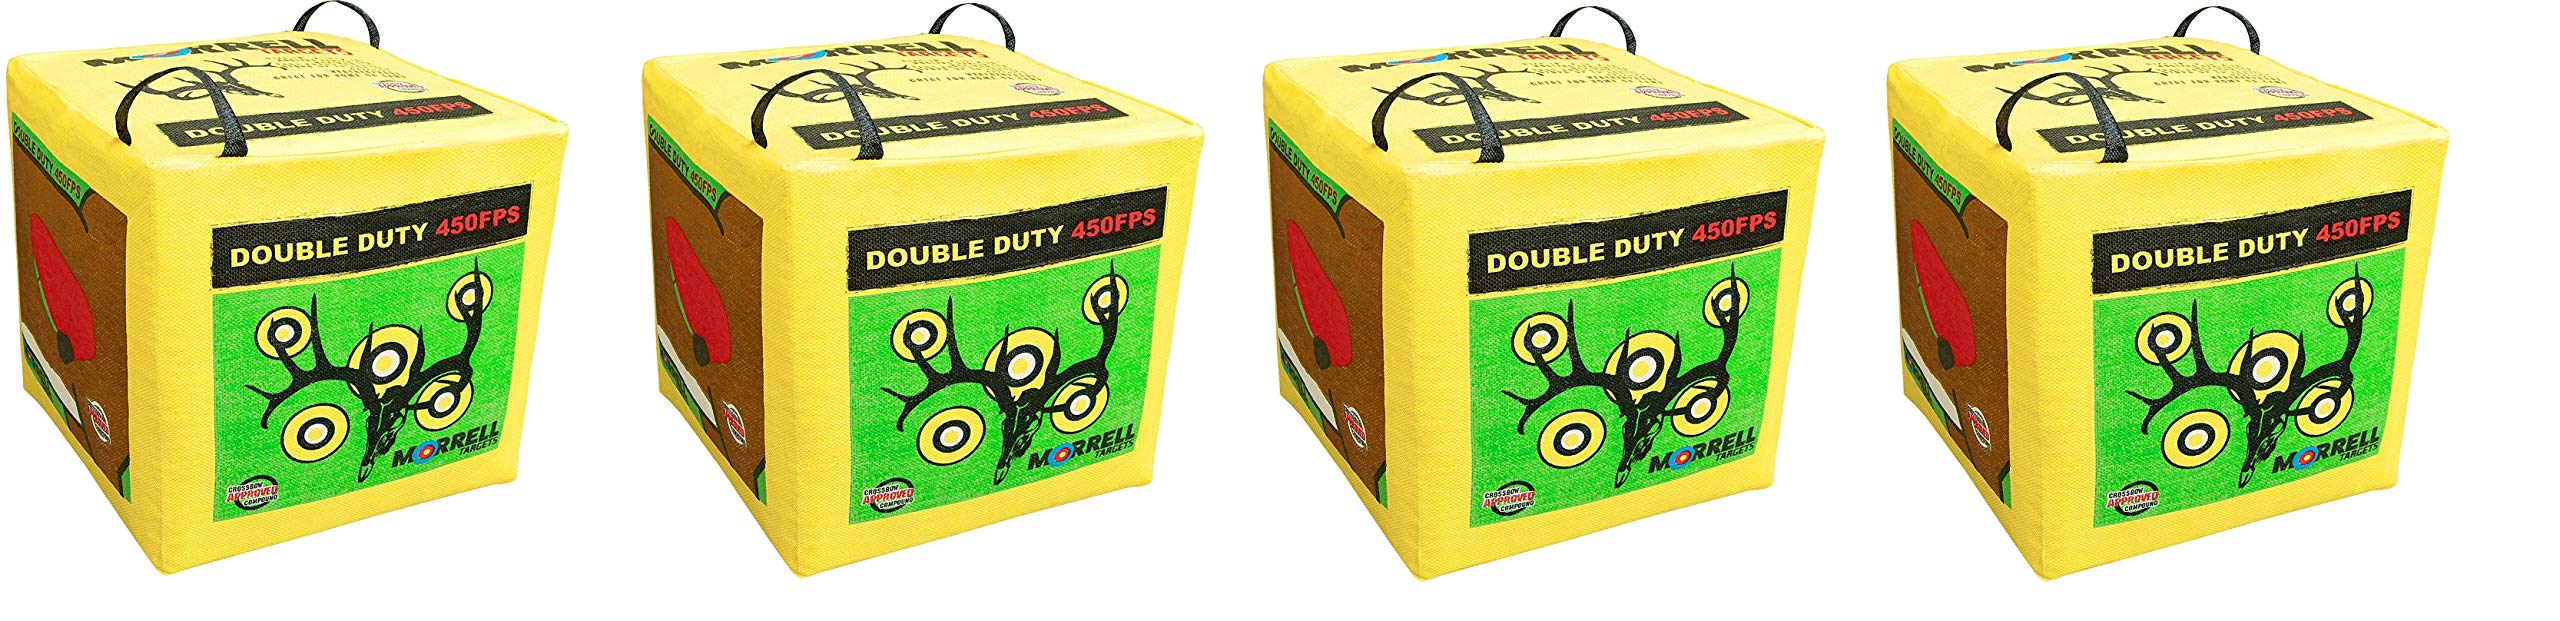 Morrell Double Duty 450FPS Field Point Bag Archery Target - for Crossbows, Compounds, Traditional Bows and Airbows (4-Pack)